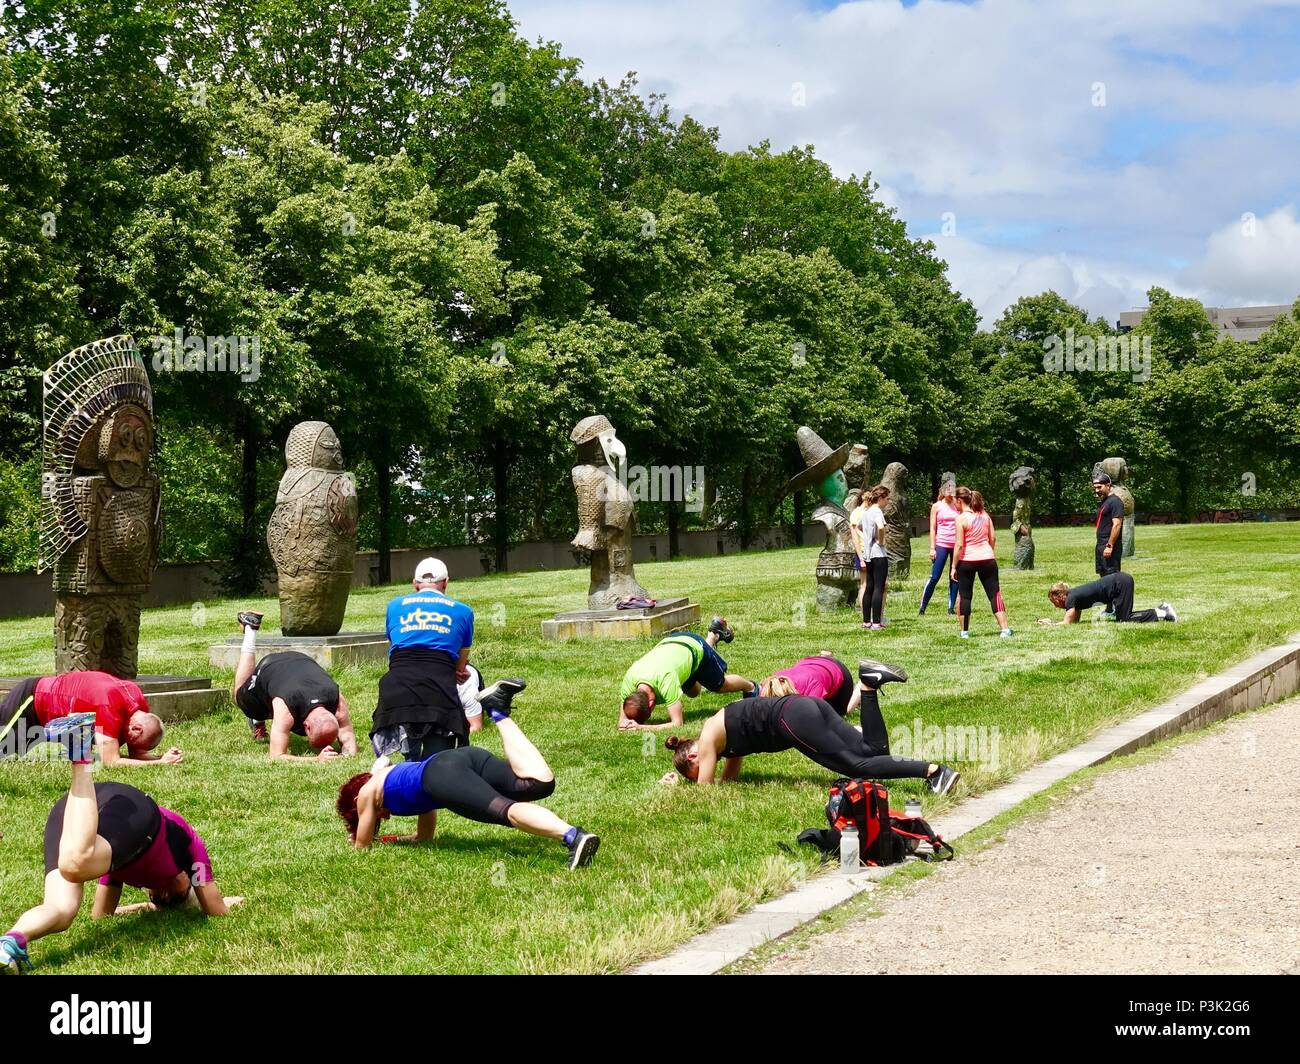 Fitness class works out among statues of the 'Children of the World,' any artist Rachid Khimoune, Bercy Park, Paris, France - Stock Image